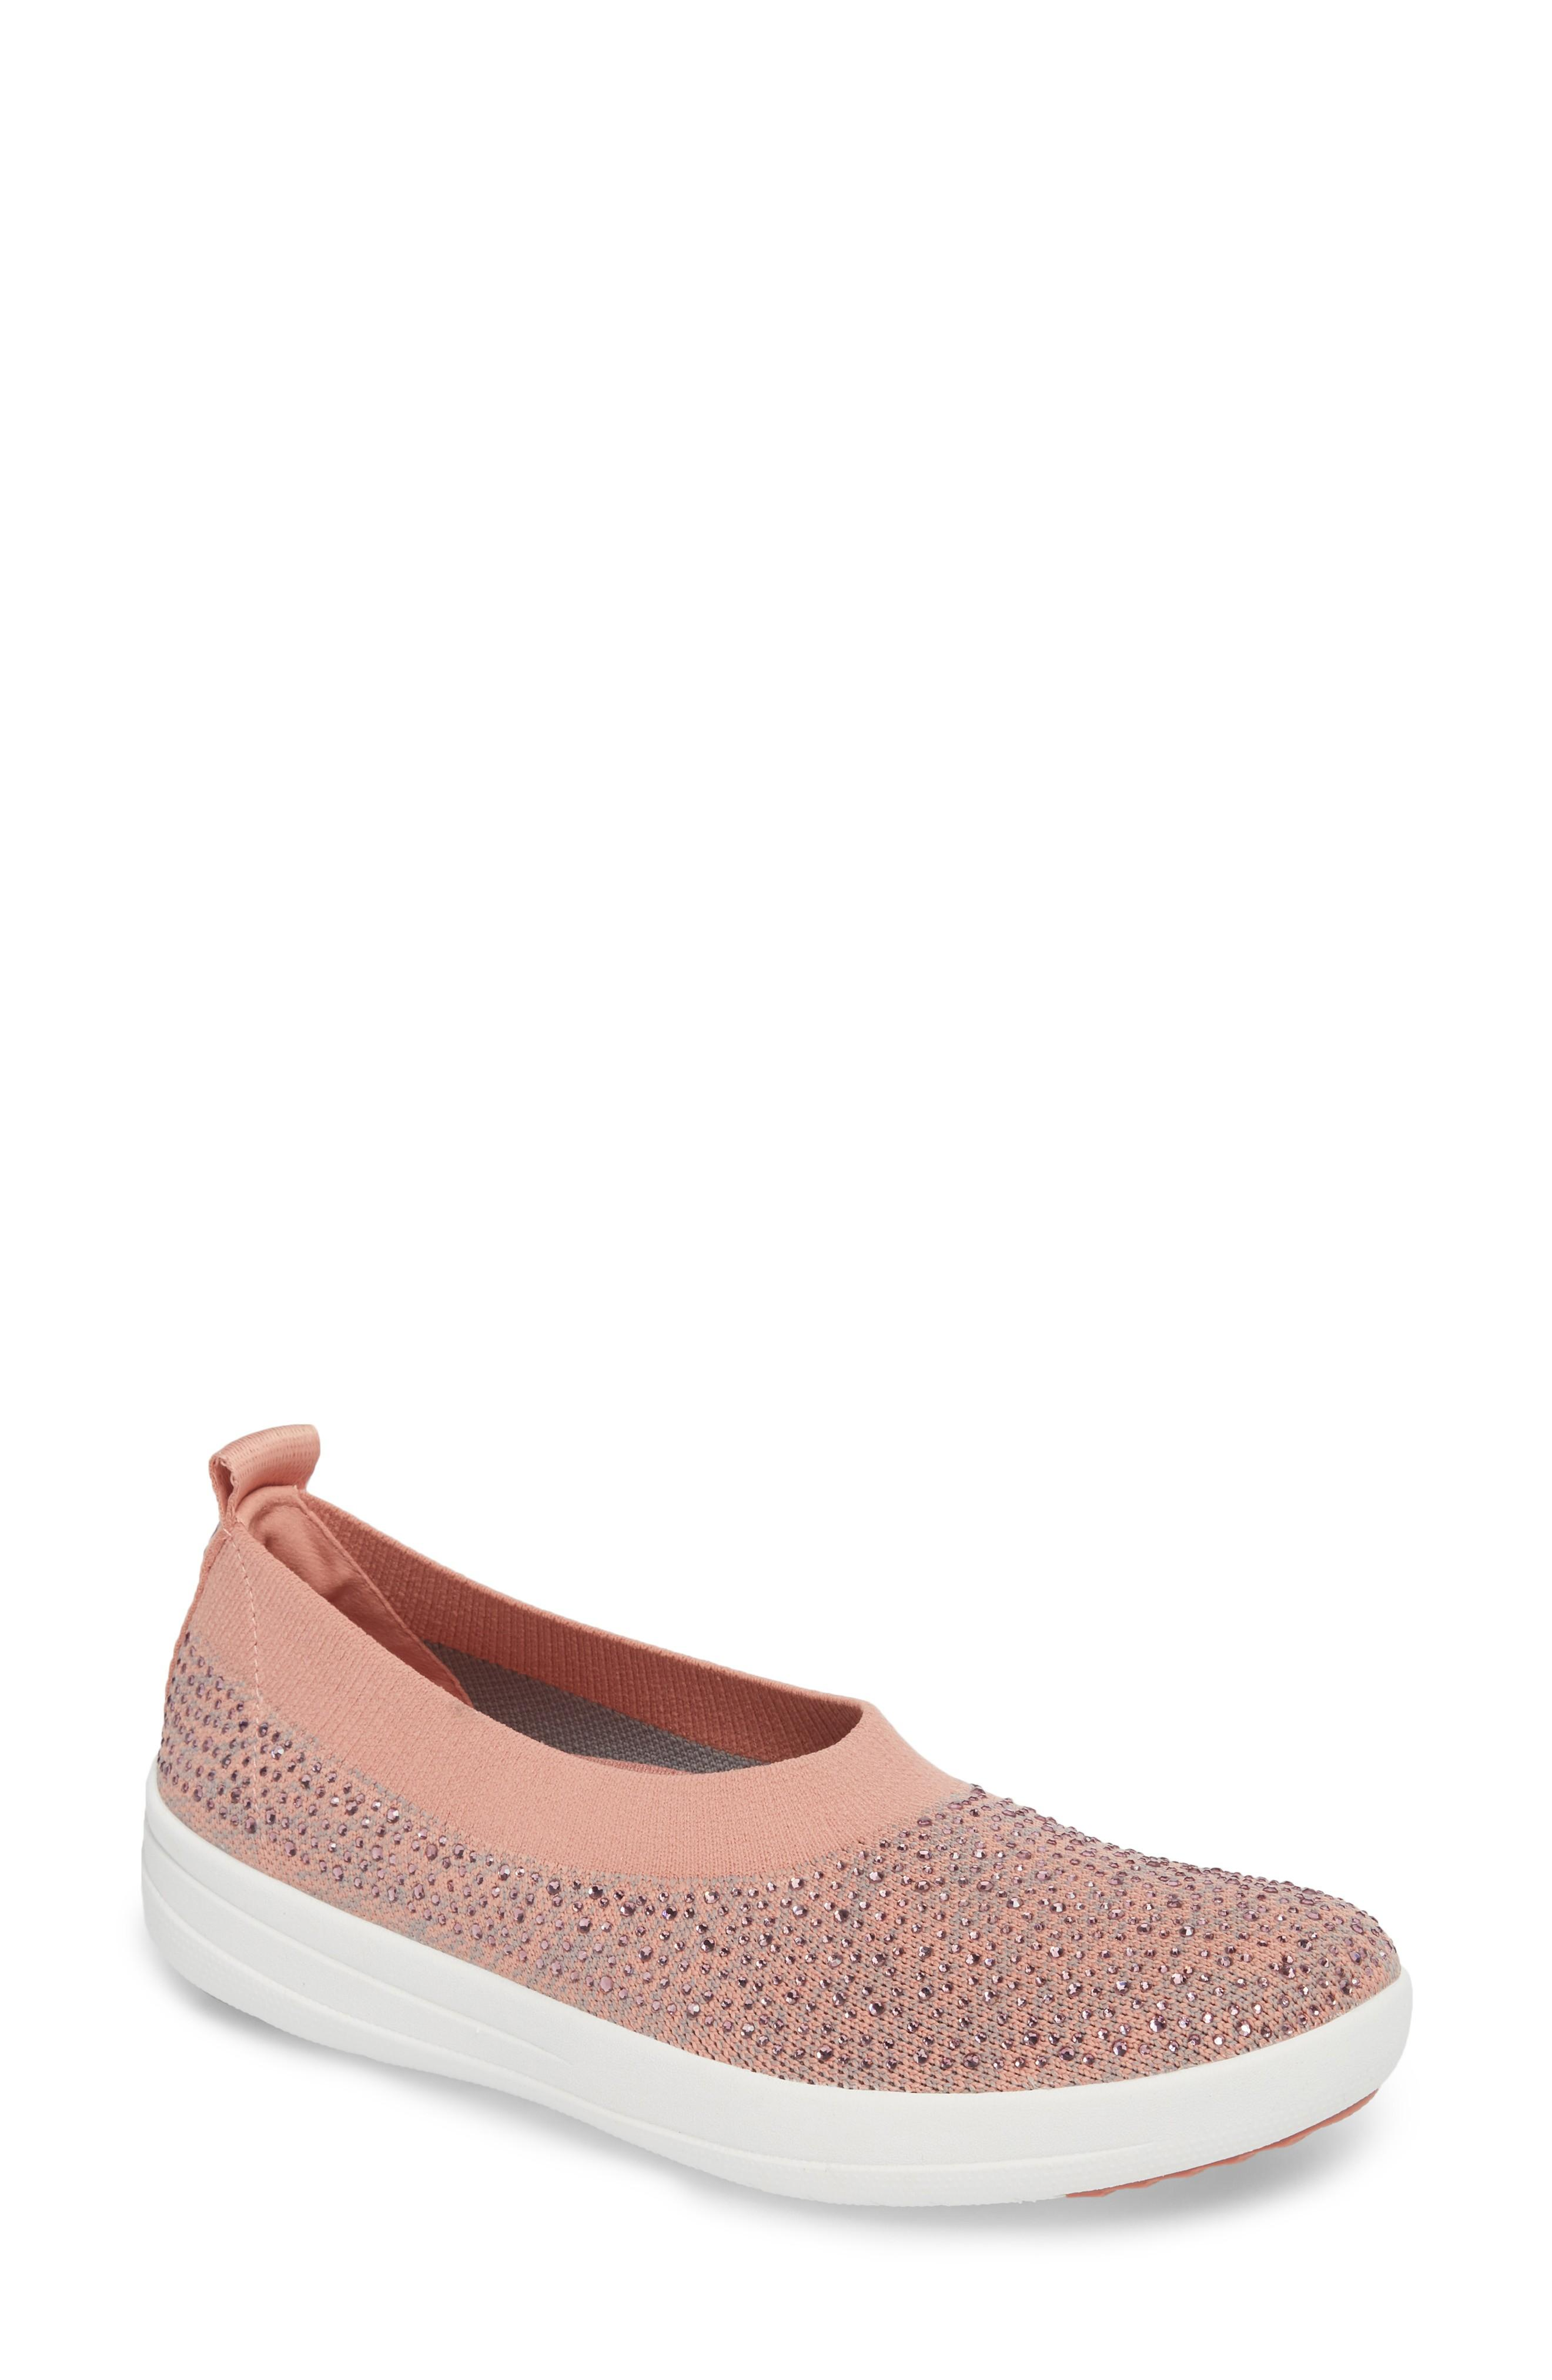 67fc3846e Fitflop Uberknit Slip-On Sneaker In Dusky Pink  Soft Grey